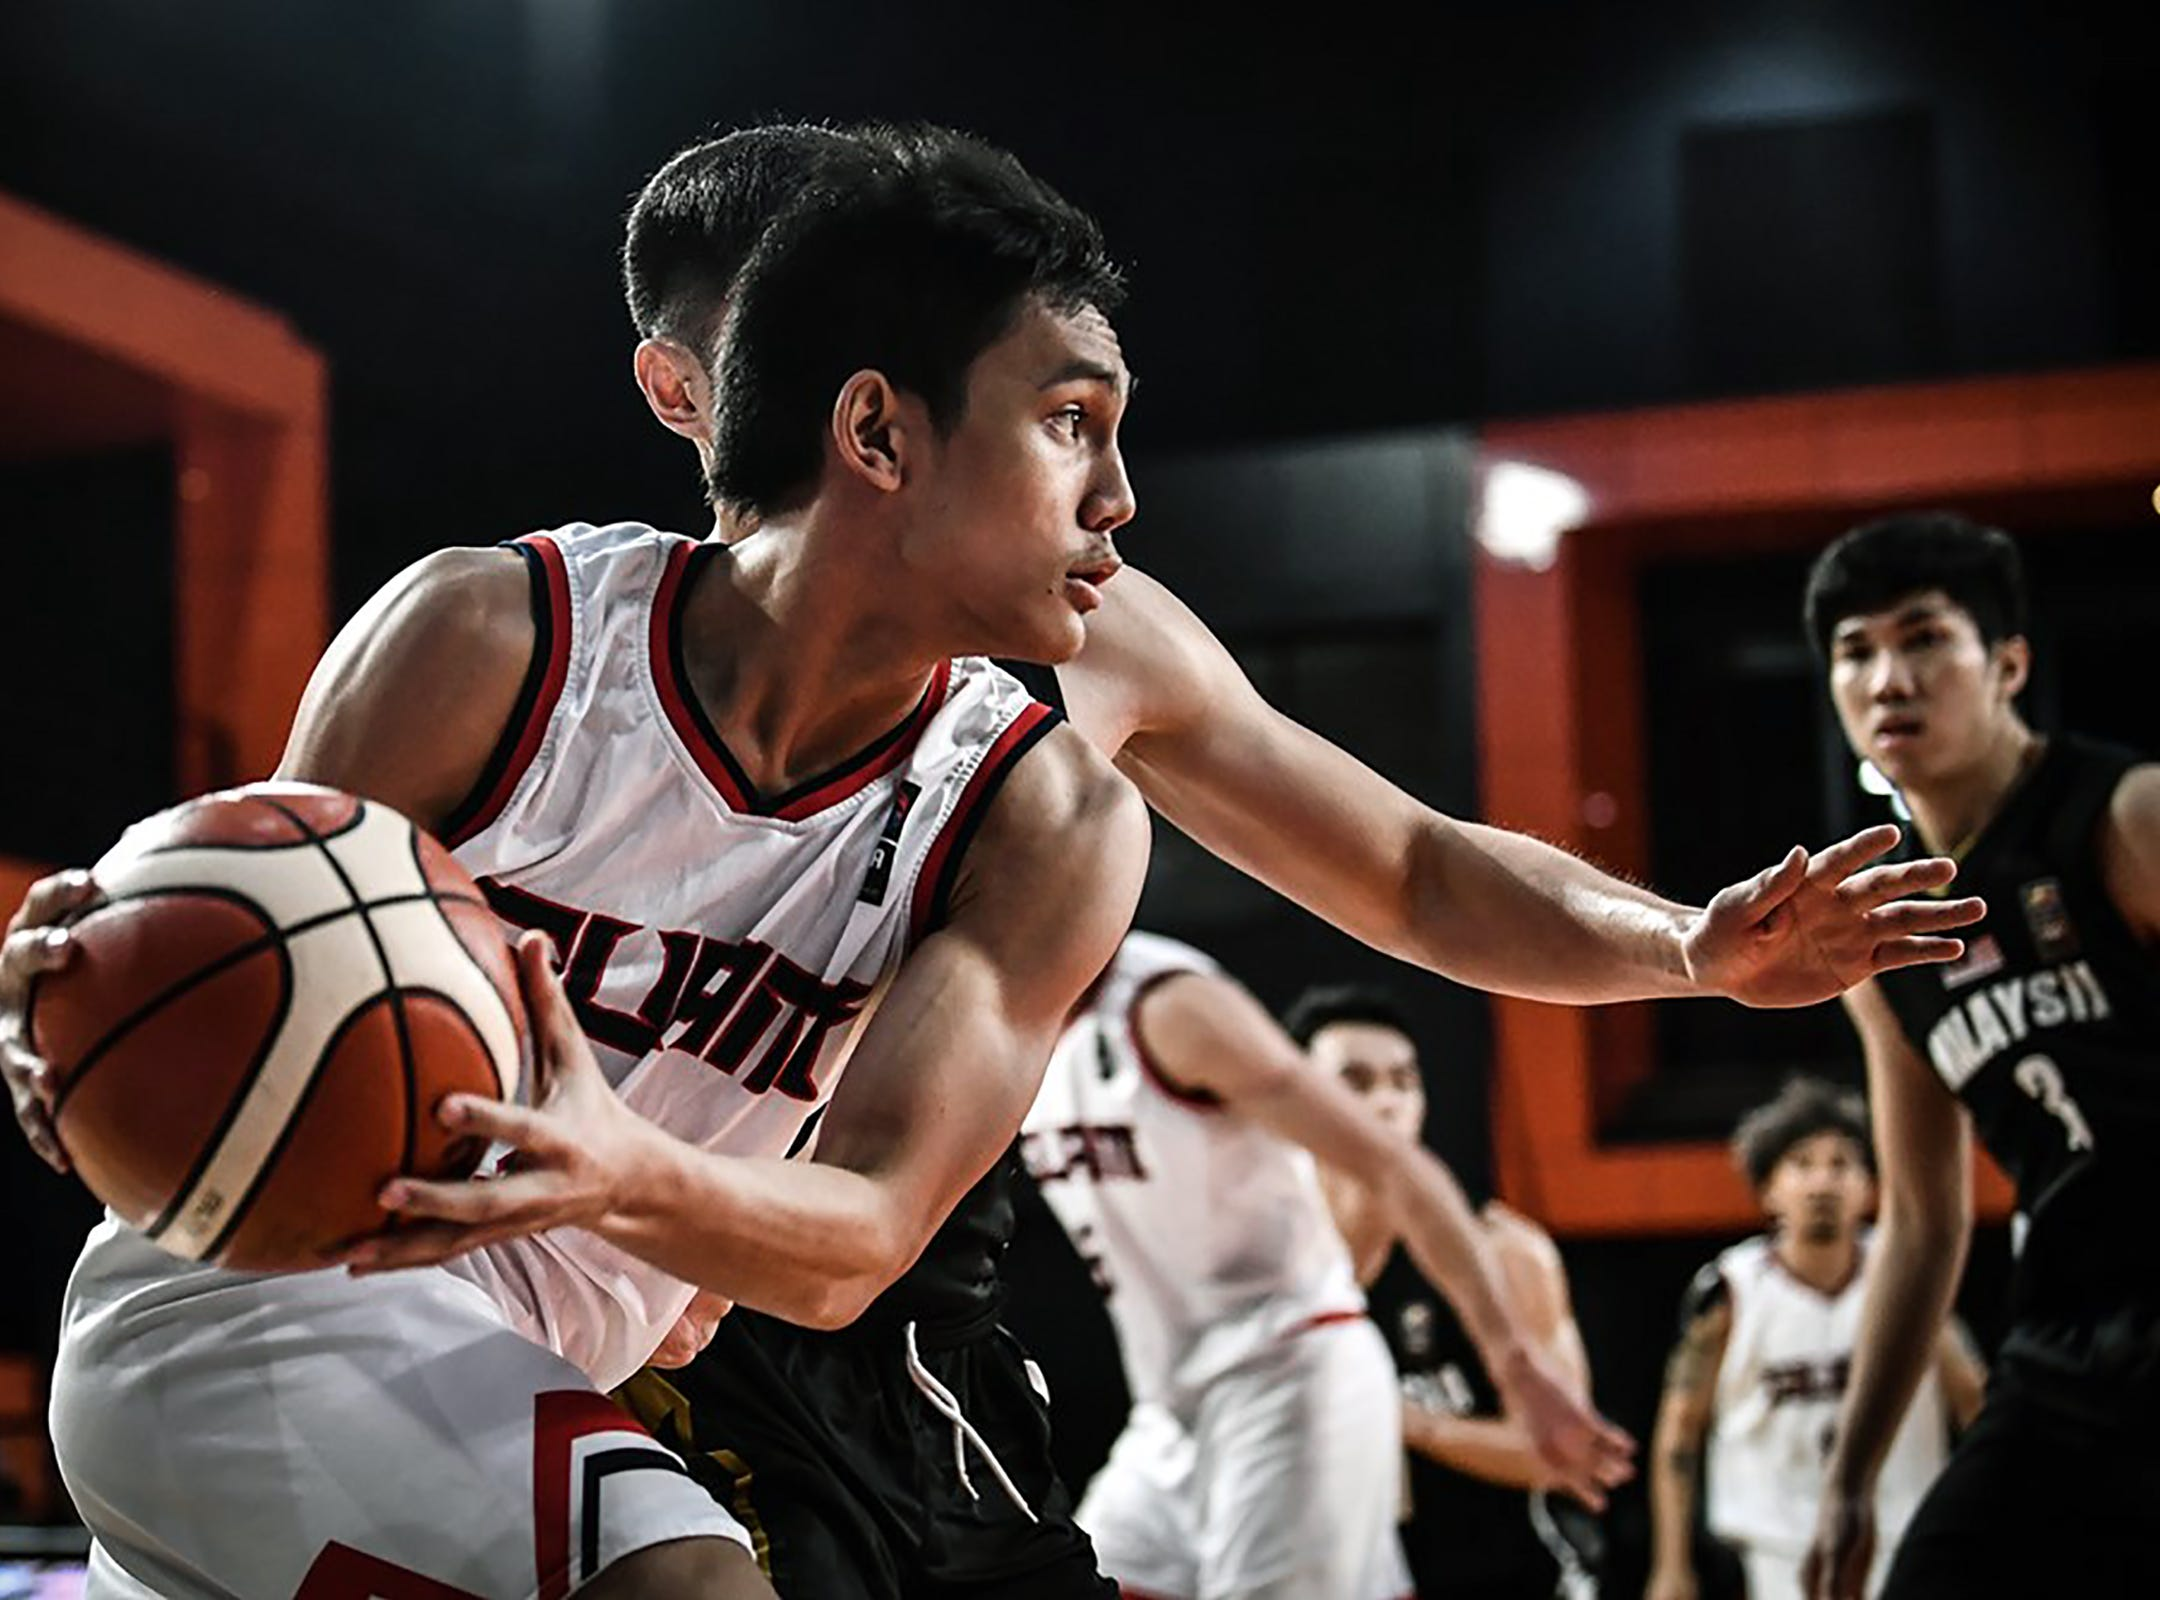 Guam's Chris Conner looks for an opening during his team's final game against Malaysia. Guam won 101-78 to complete a 6-0 sweep of all teams in  Asia's Eastern Division and move on to the qualifier round of the FIBA Asia Cup 2021